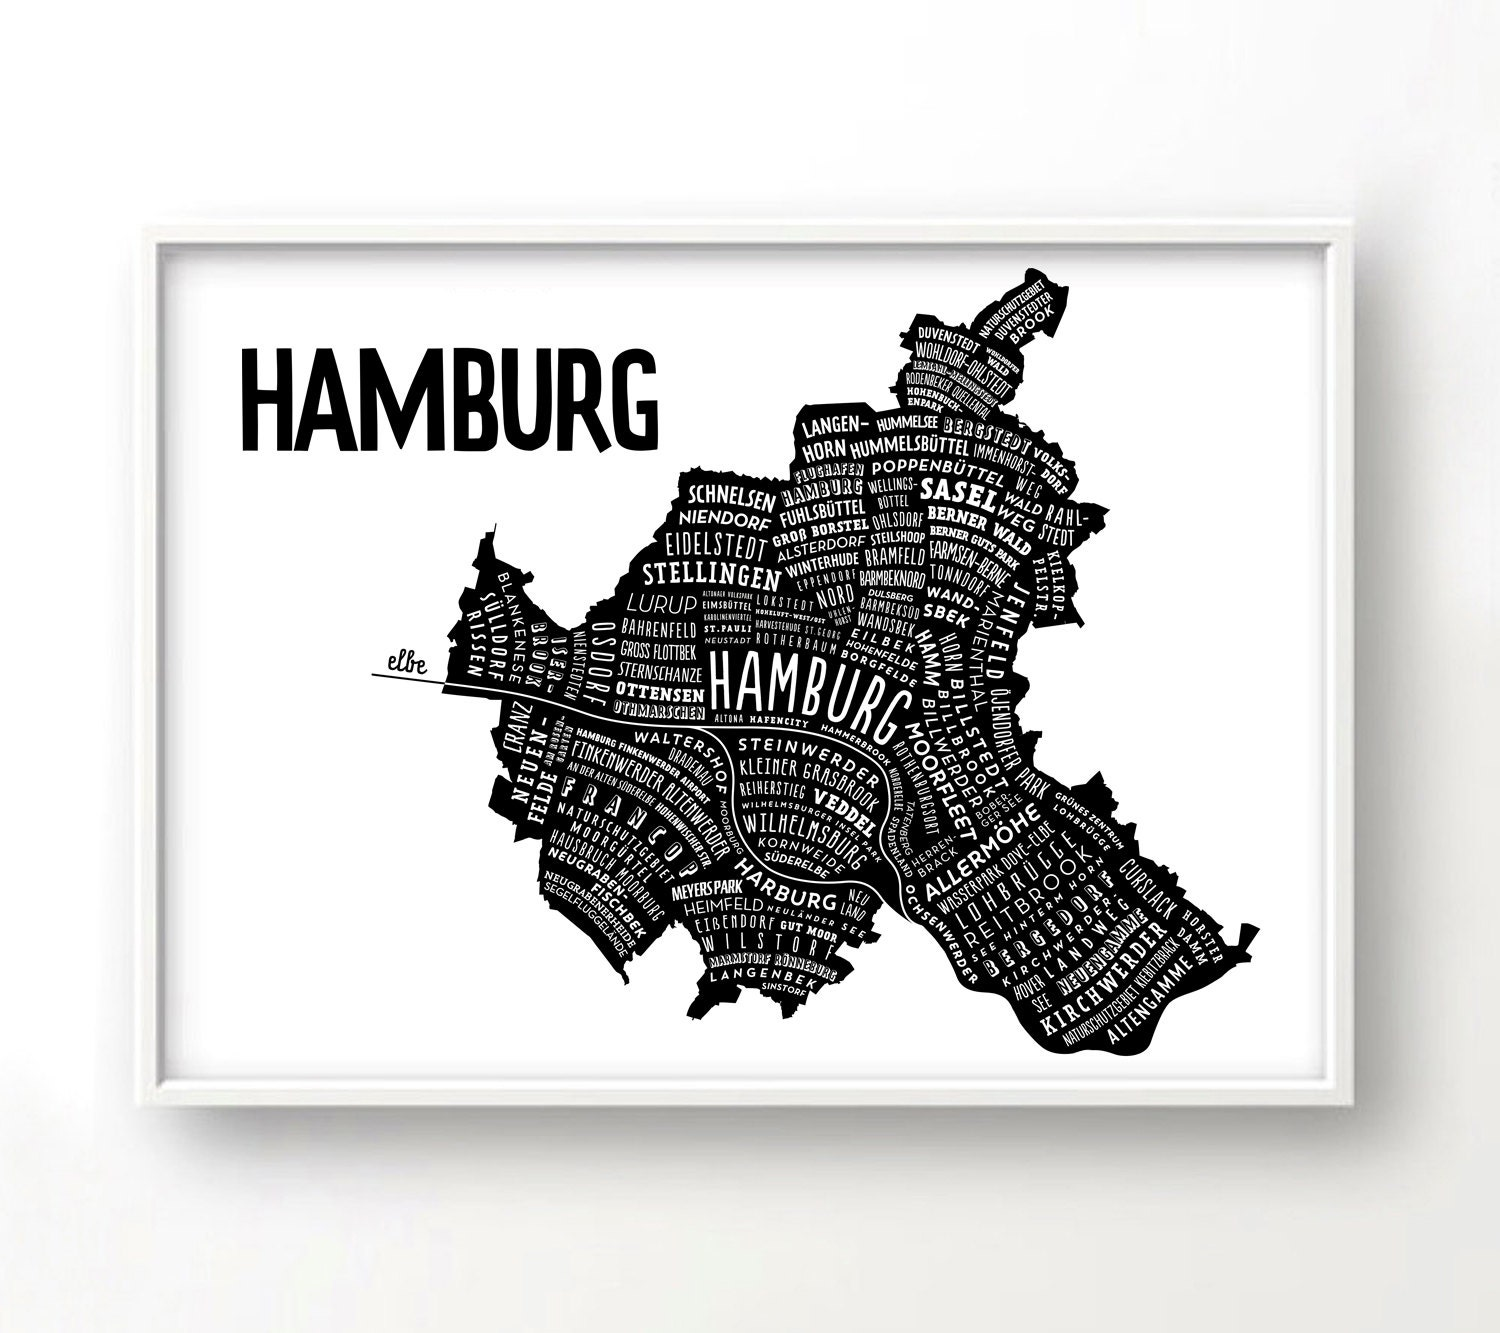 hamburg stadtplan deutschland karte grafik design poster. Black Bedroom Furniture Sets. Home Design Ideas